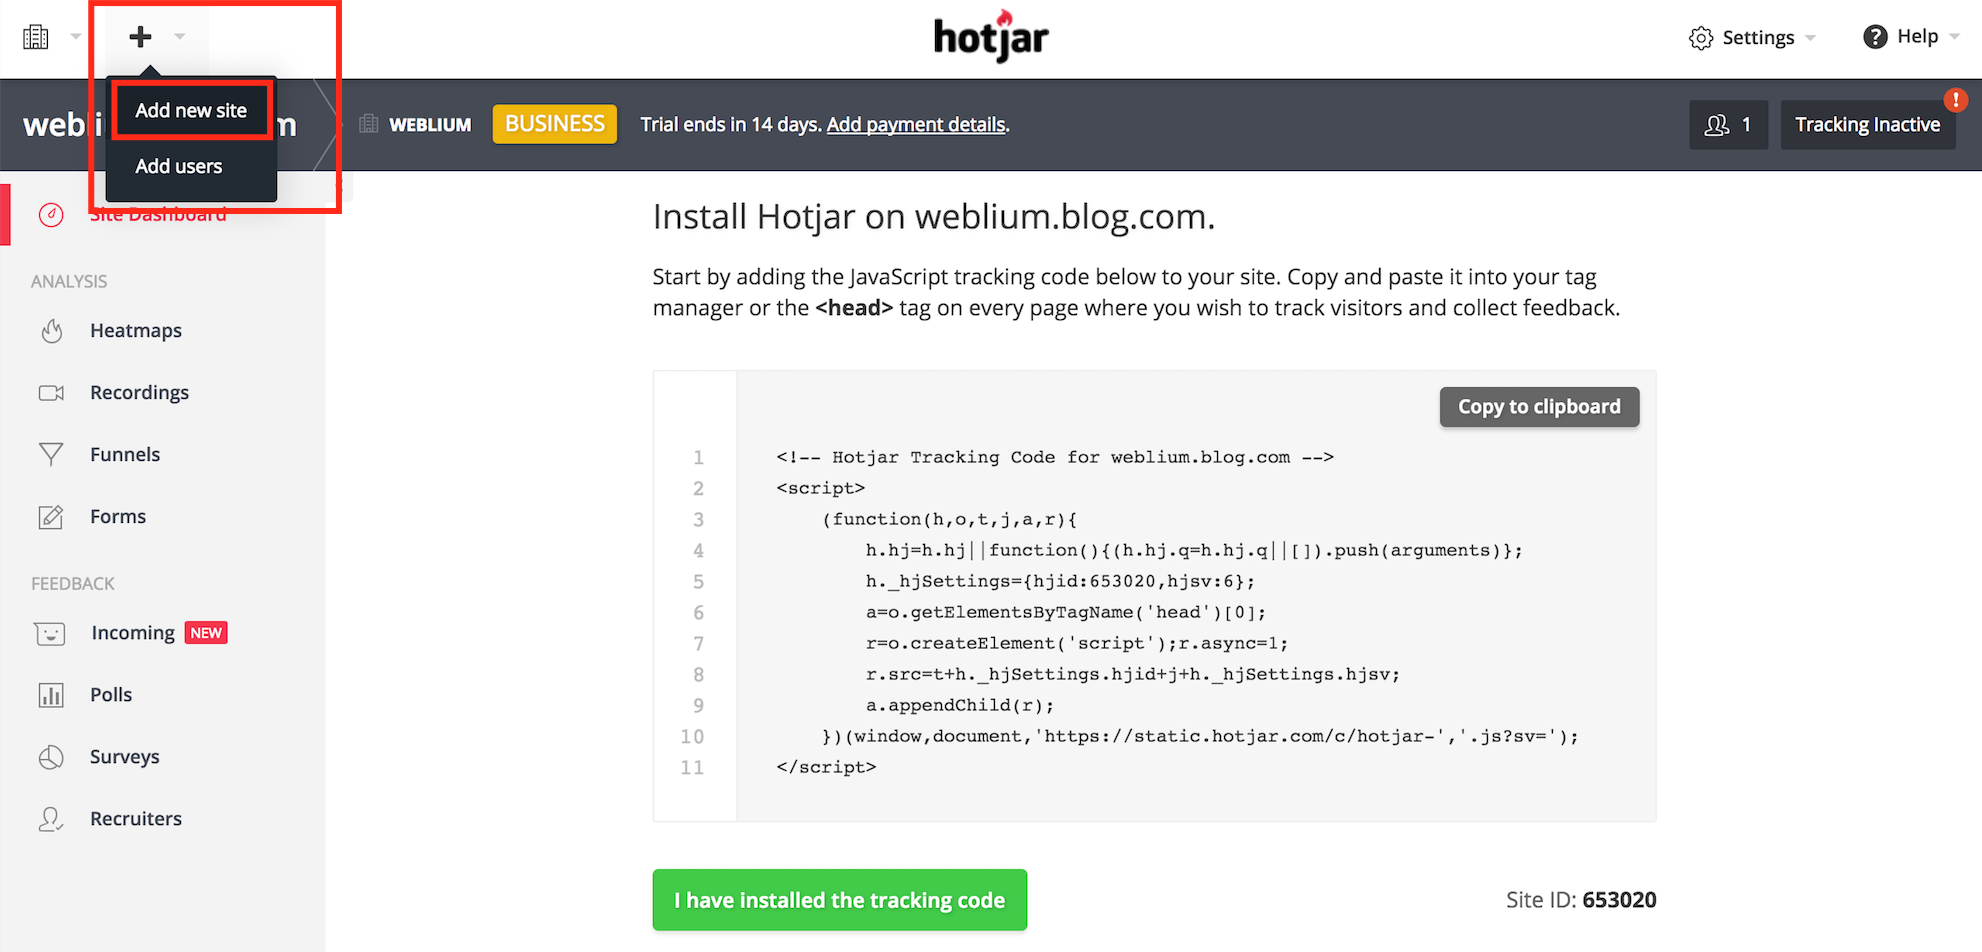 Add new site on Hotjar